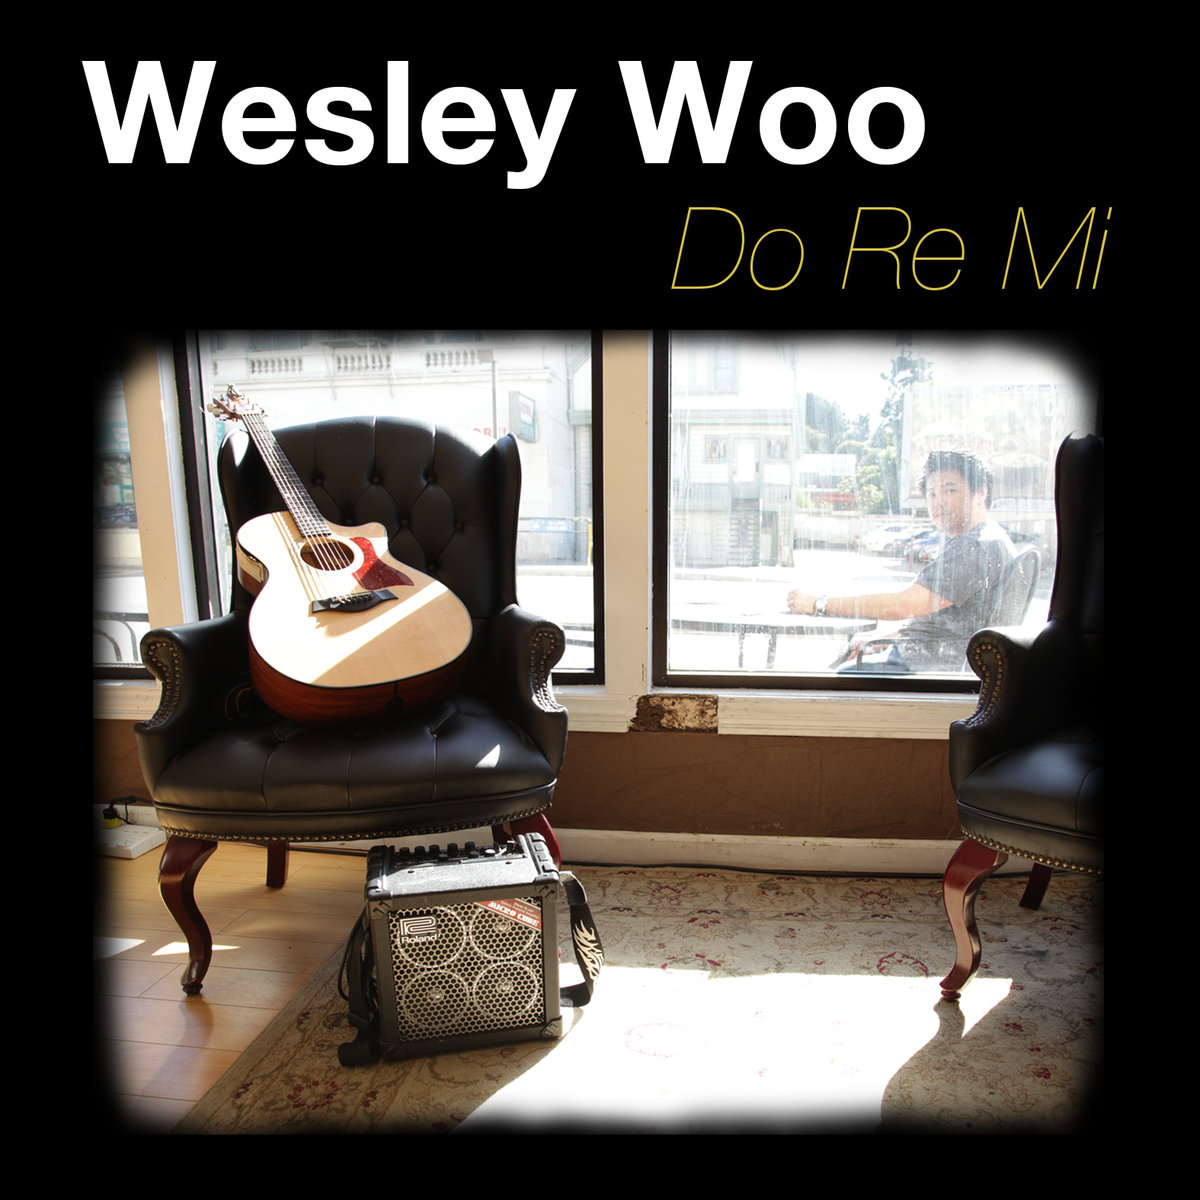 Wesley Woo - The Truth Is @ 'Do Re Mi' album (11th ave records, 11th avenue records)